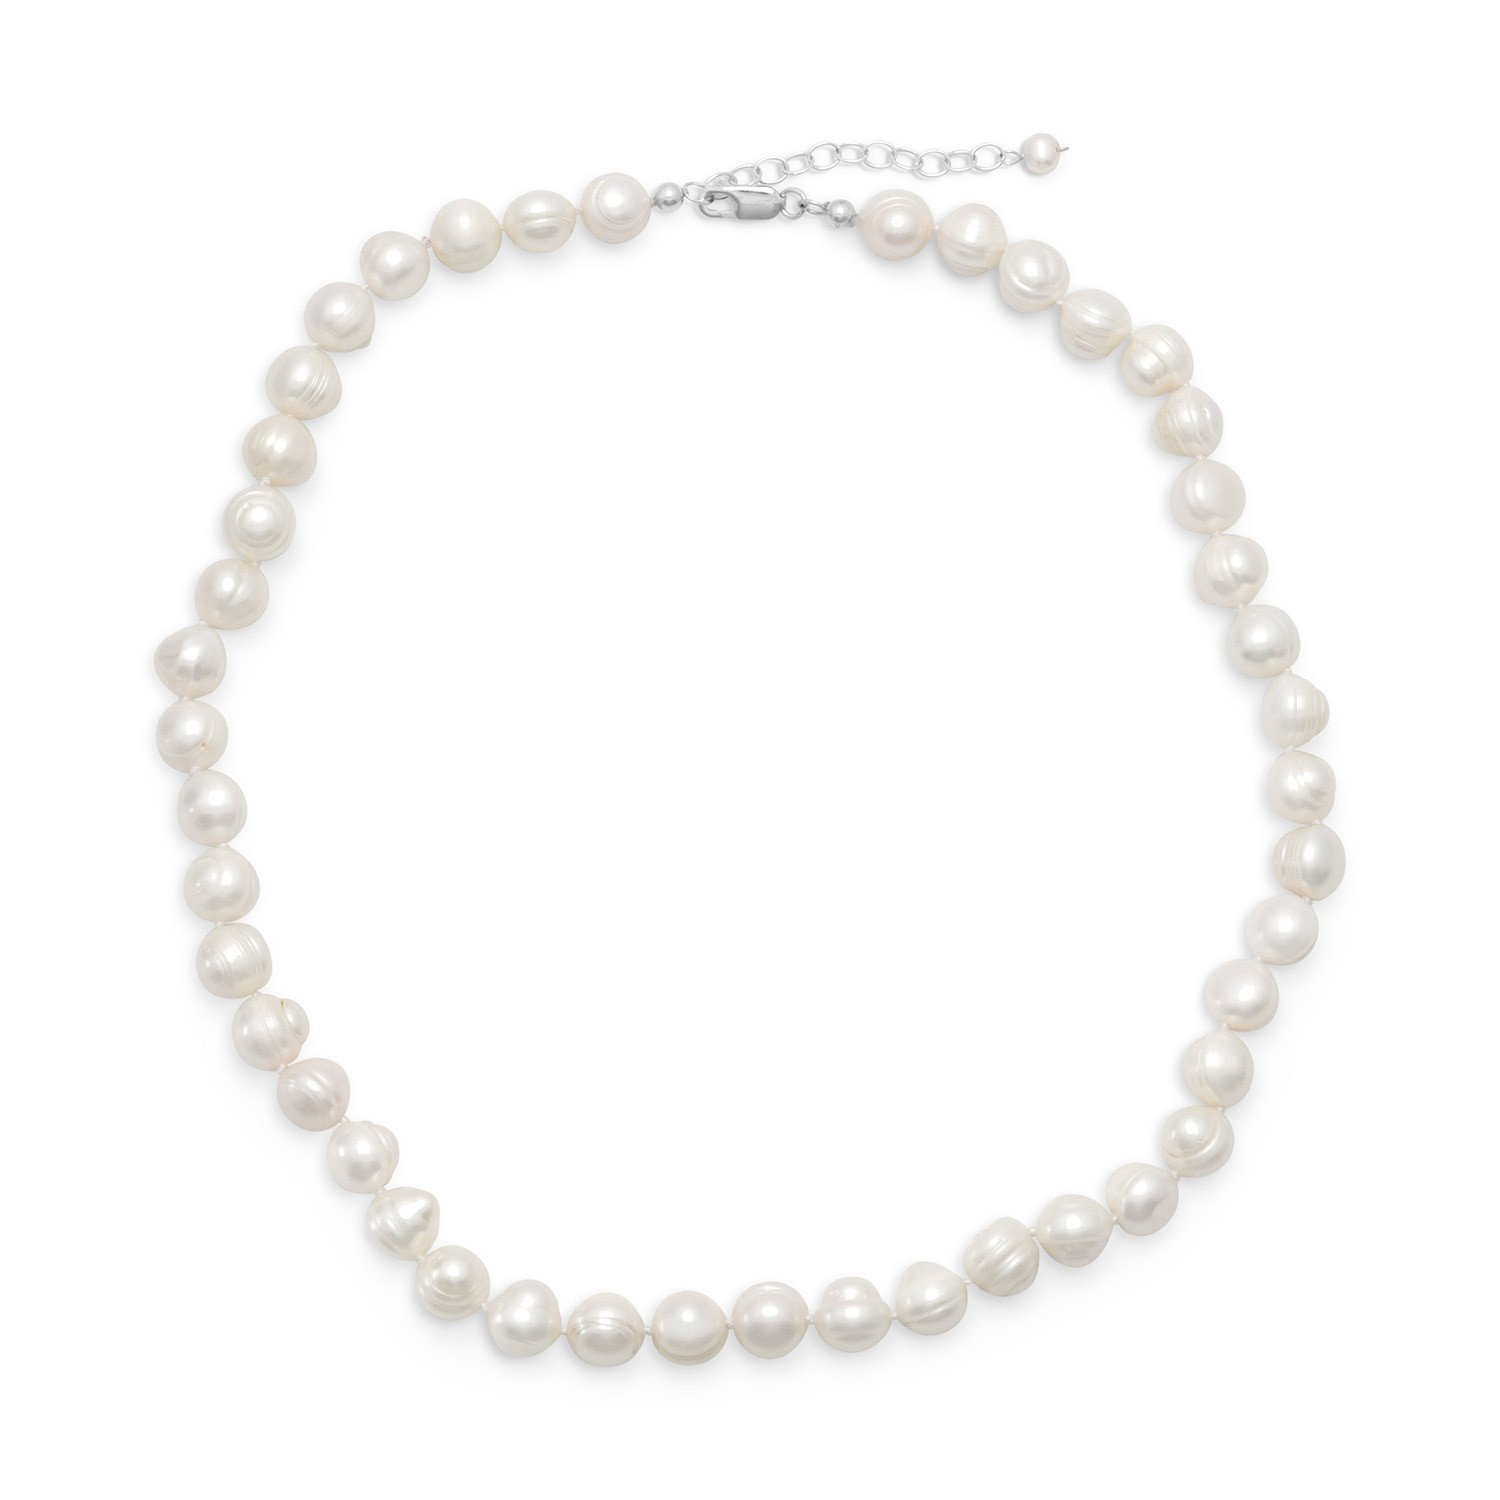 18″+2″ Extension White Cultured Freshwater Pearl Necklace